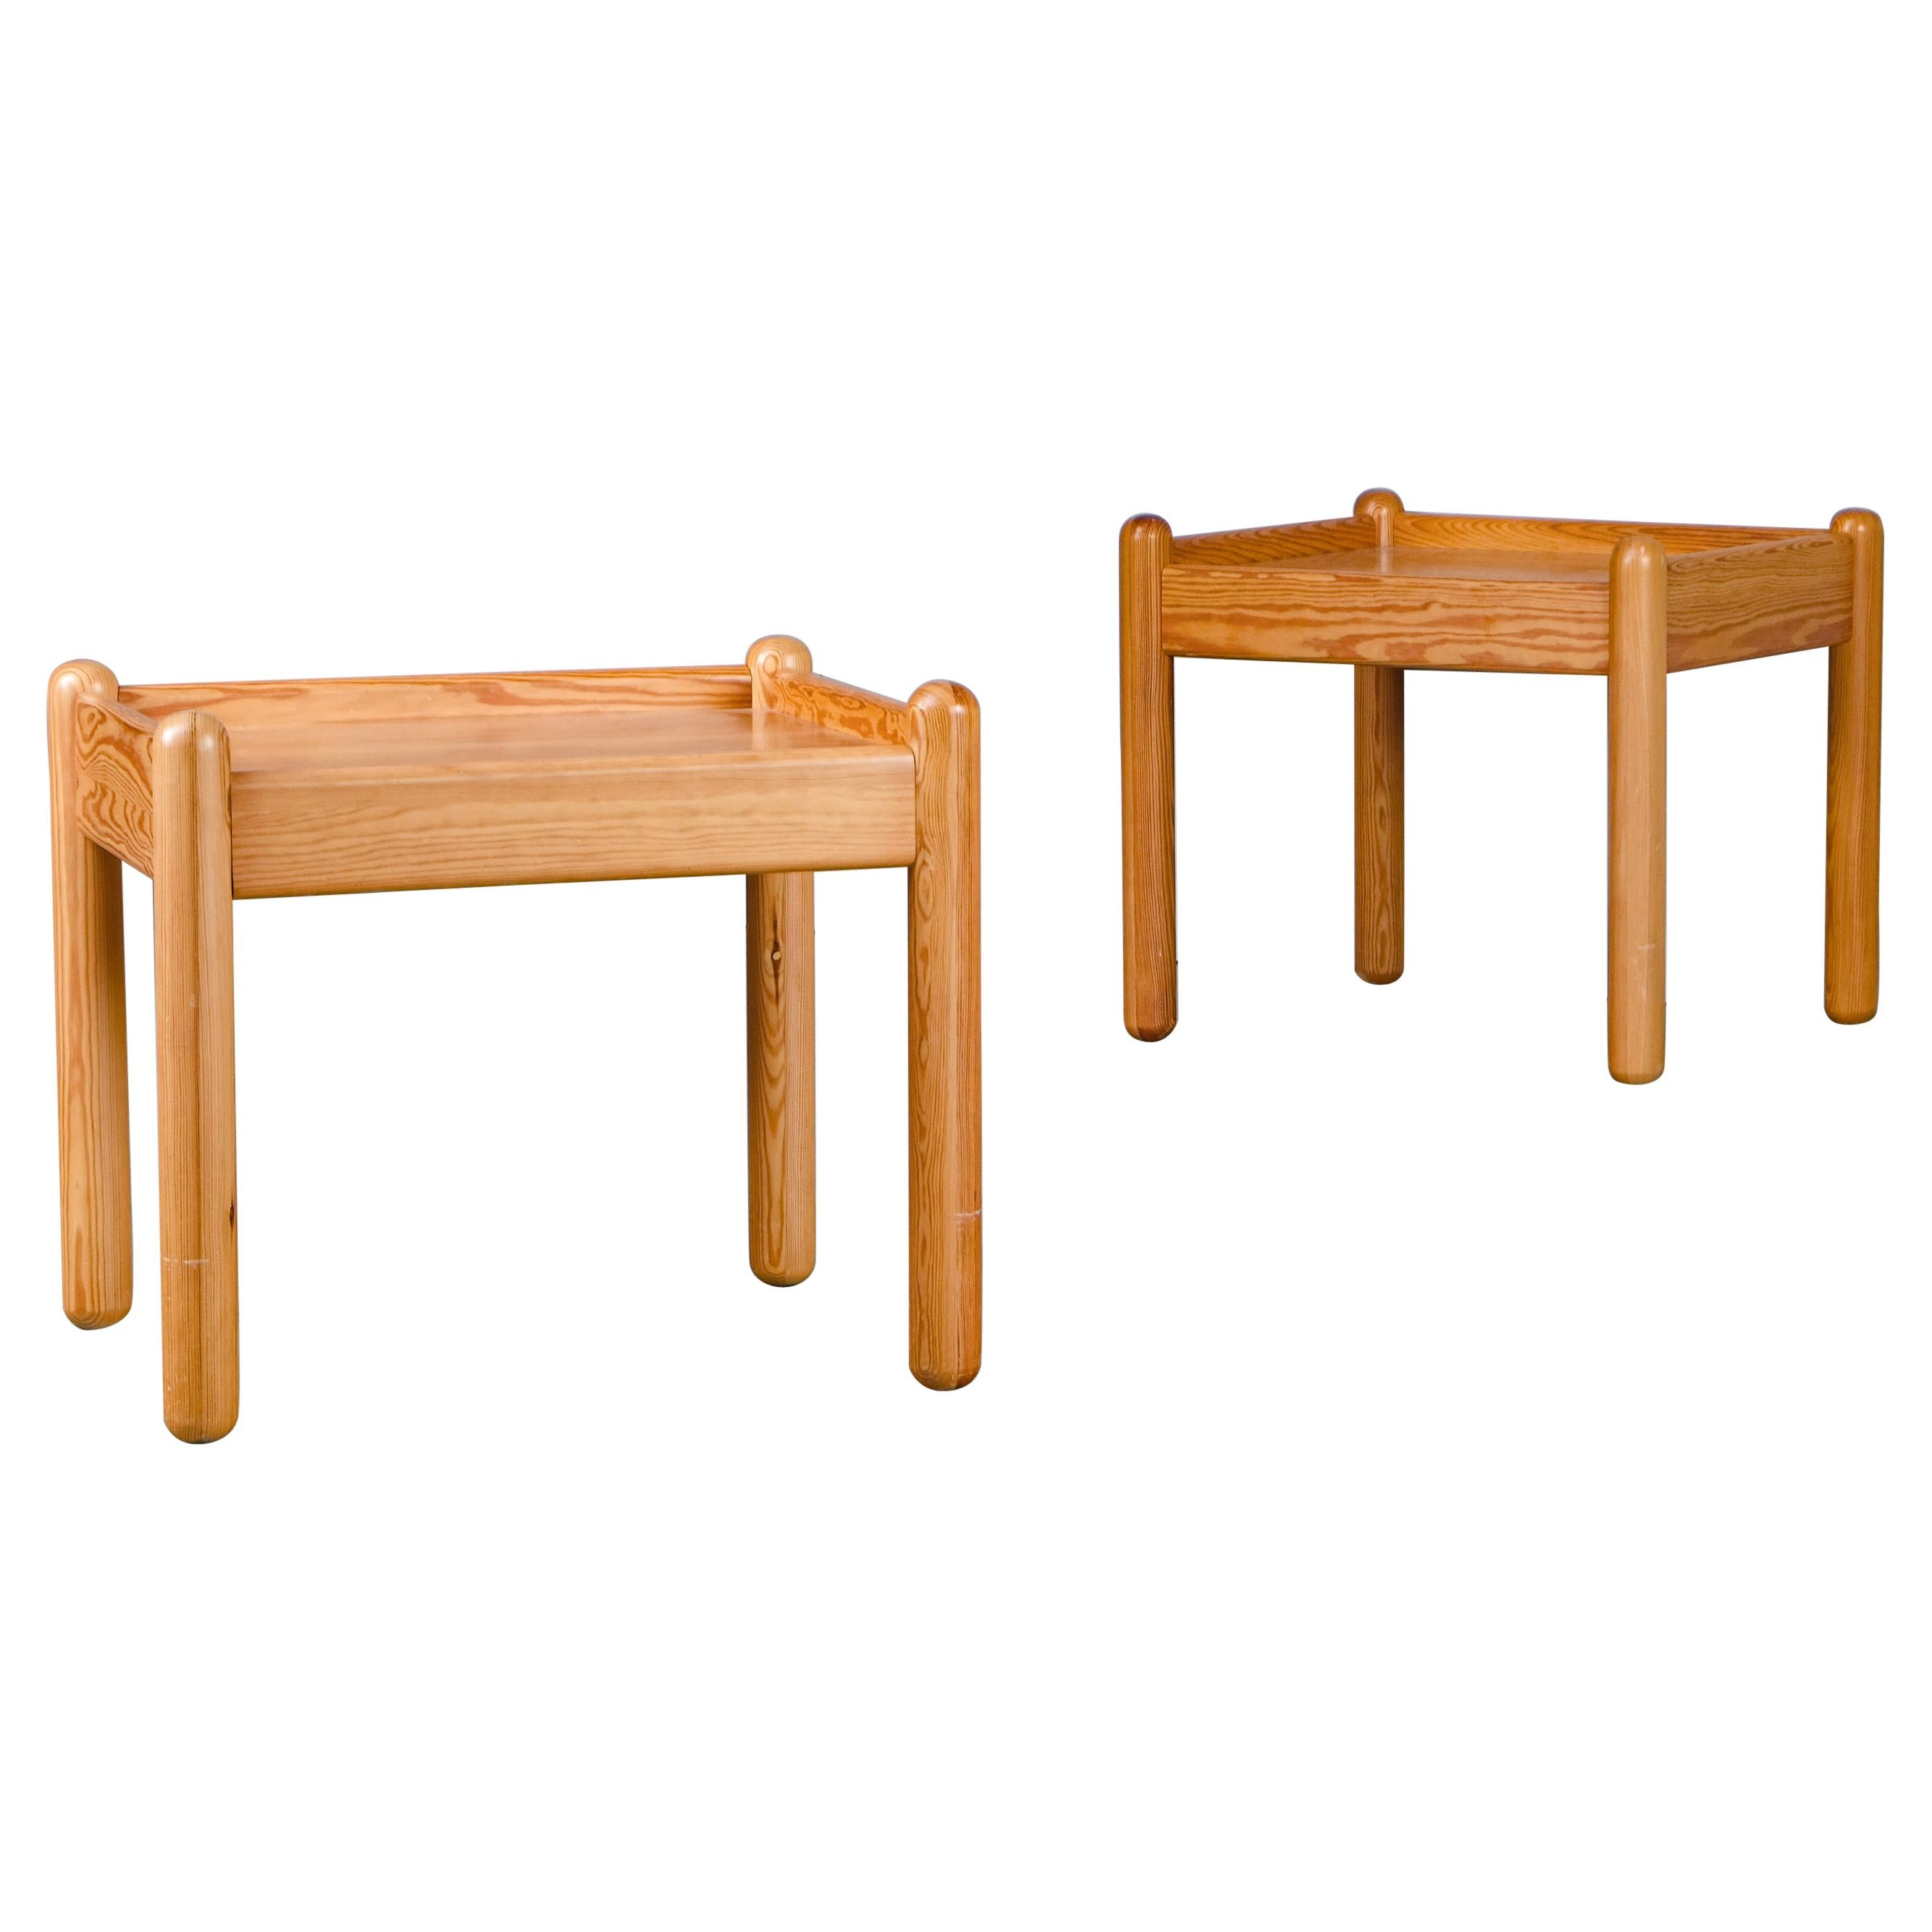 Pair of Bedside Tables, Denmark, 1970s